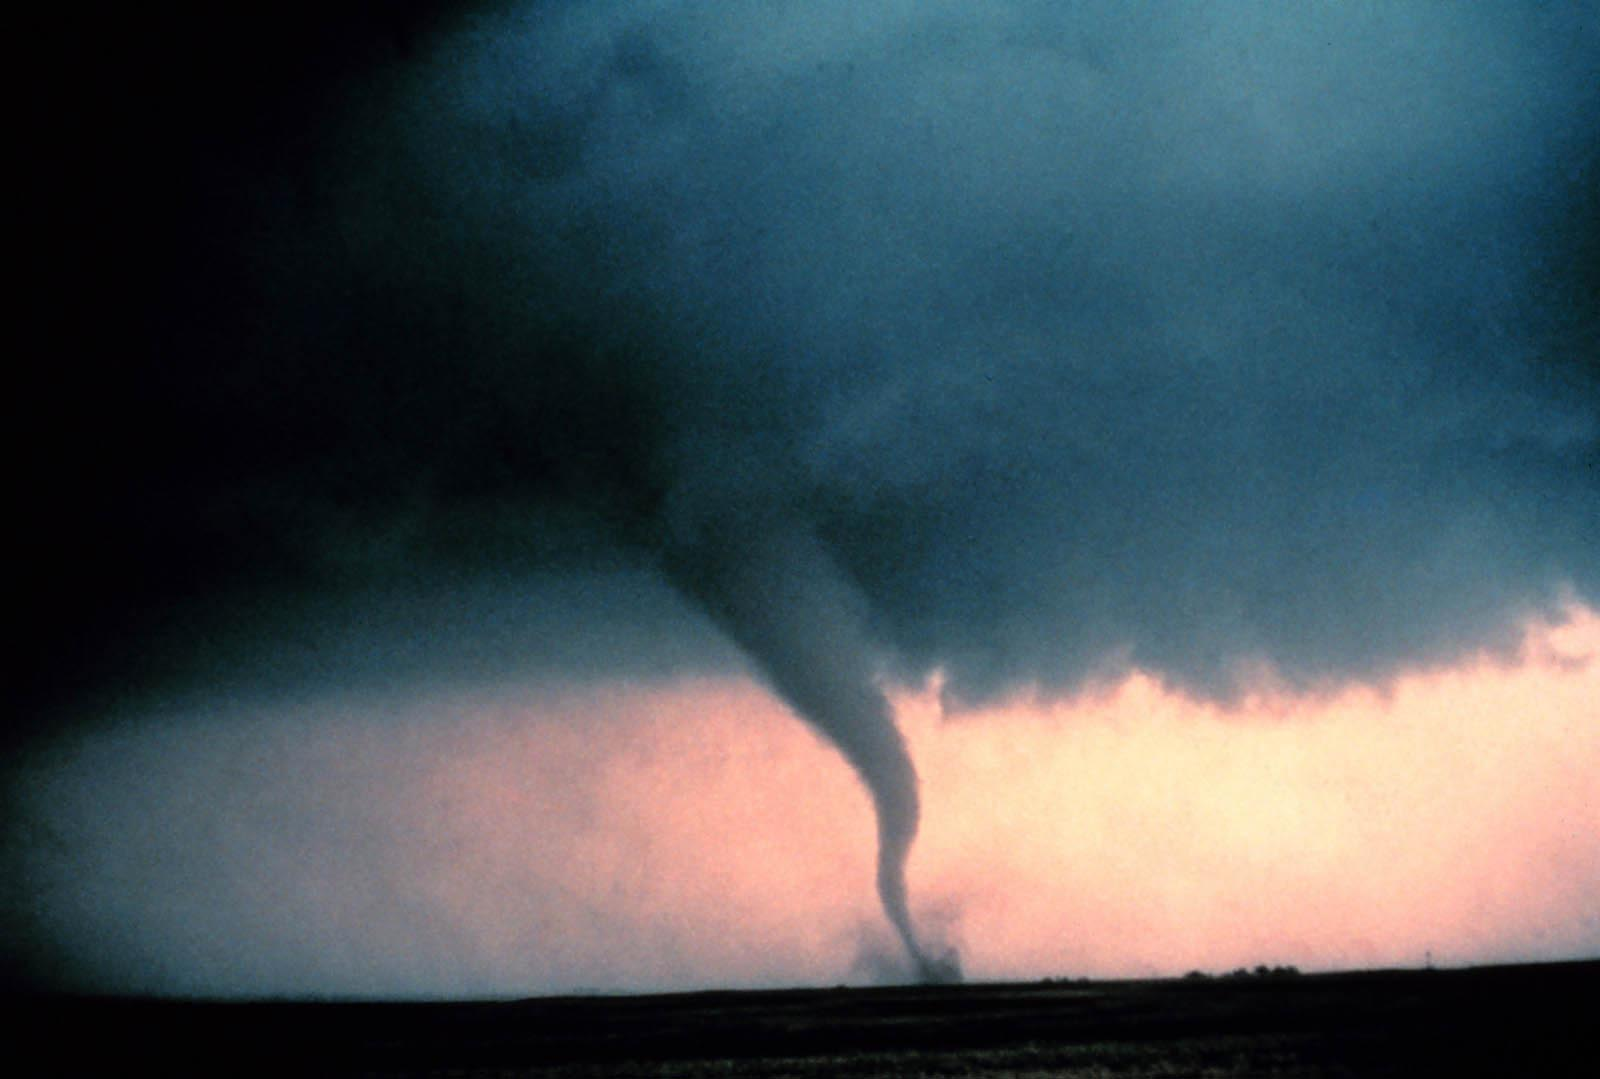 Tornado with dust and debris cloud forming at the surface